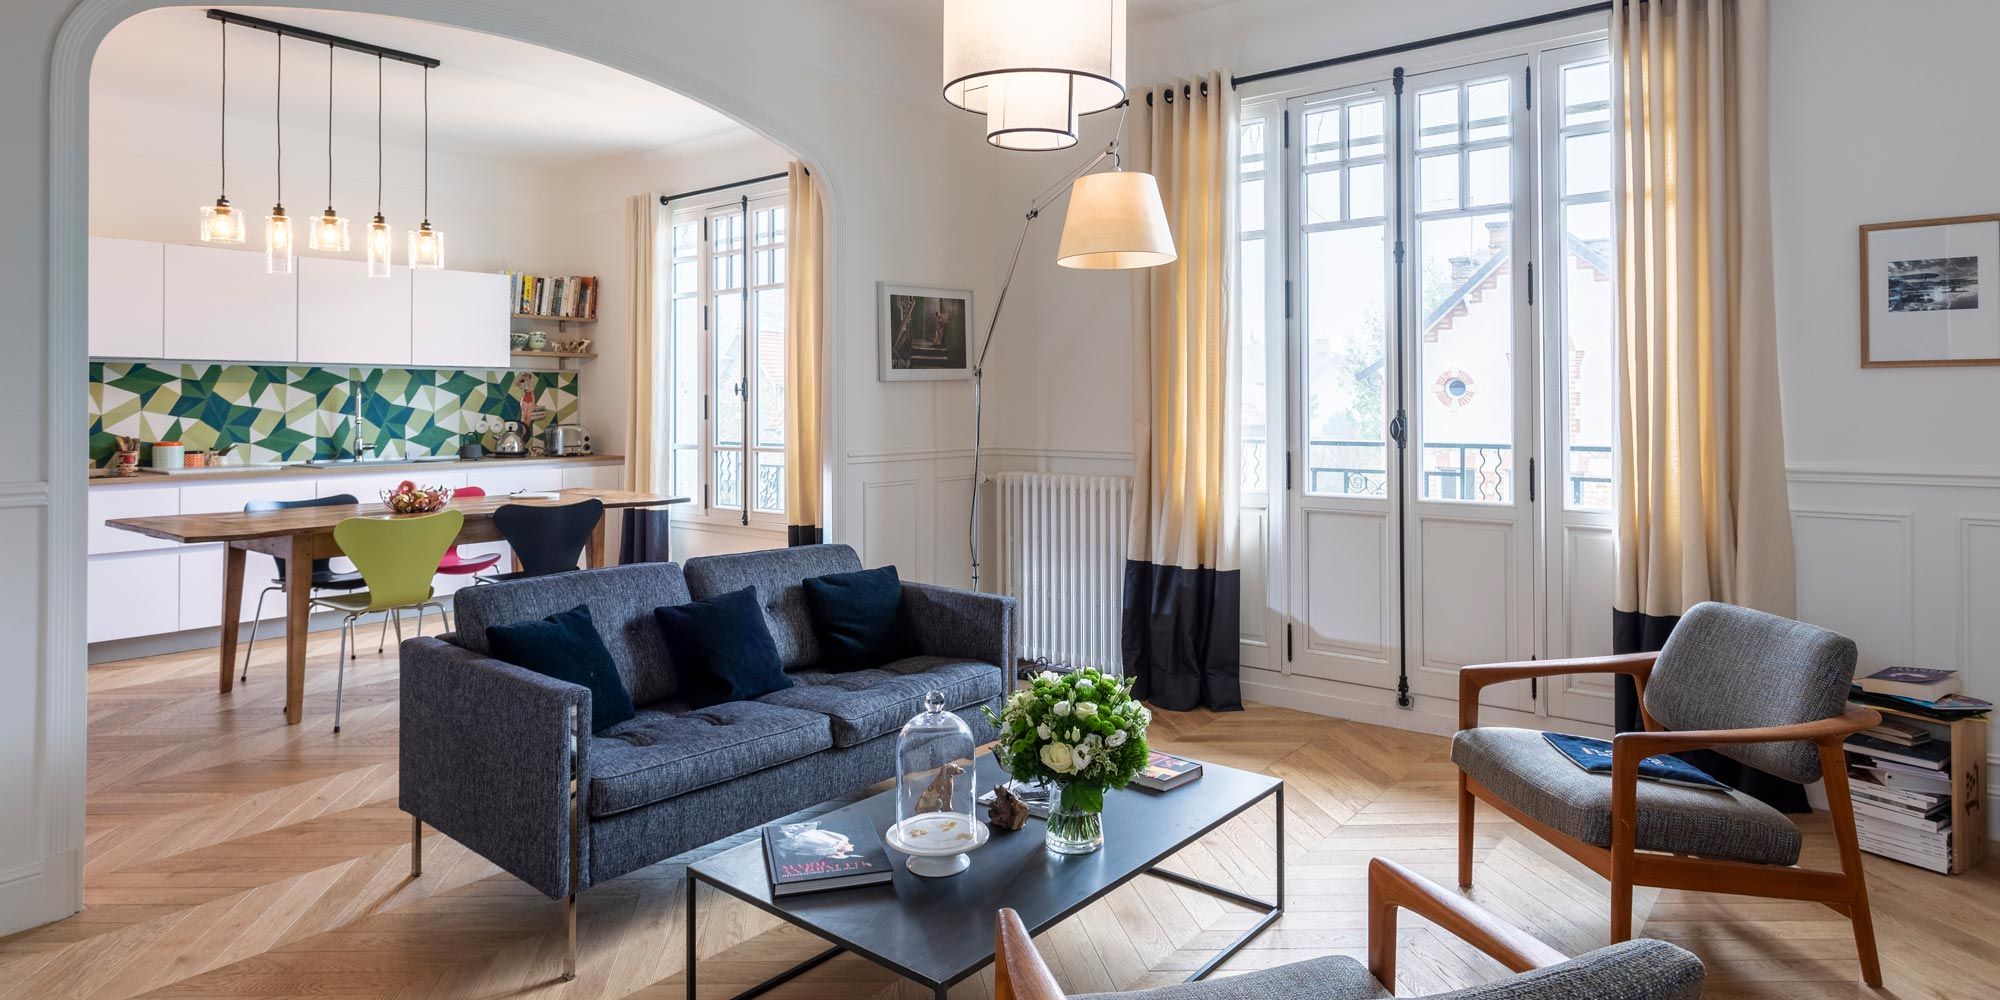 Appartement vintage Saint Germain en Laye